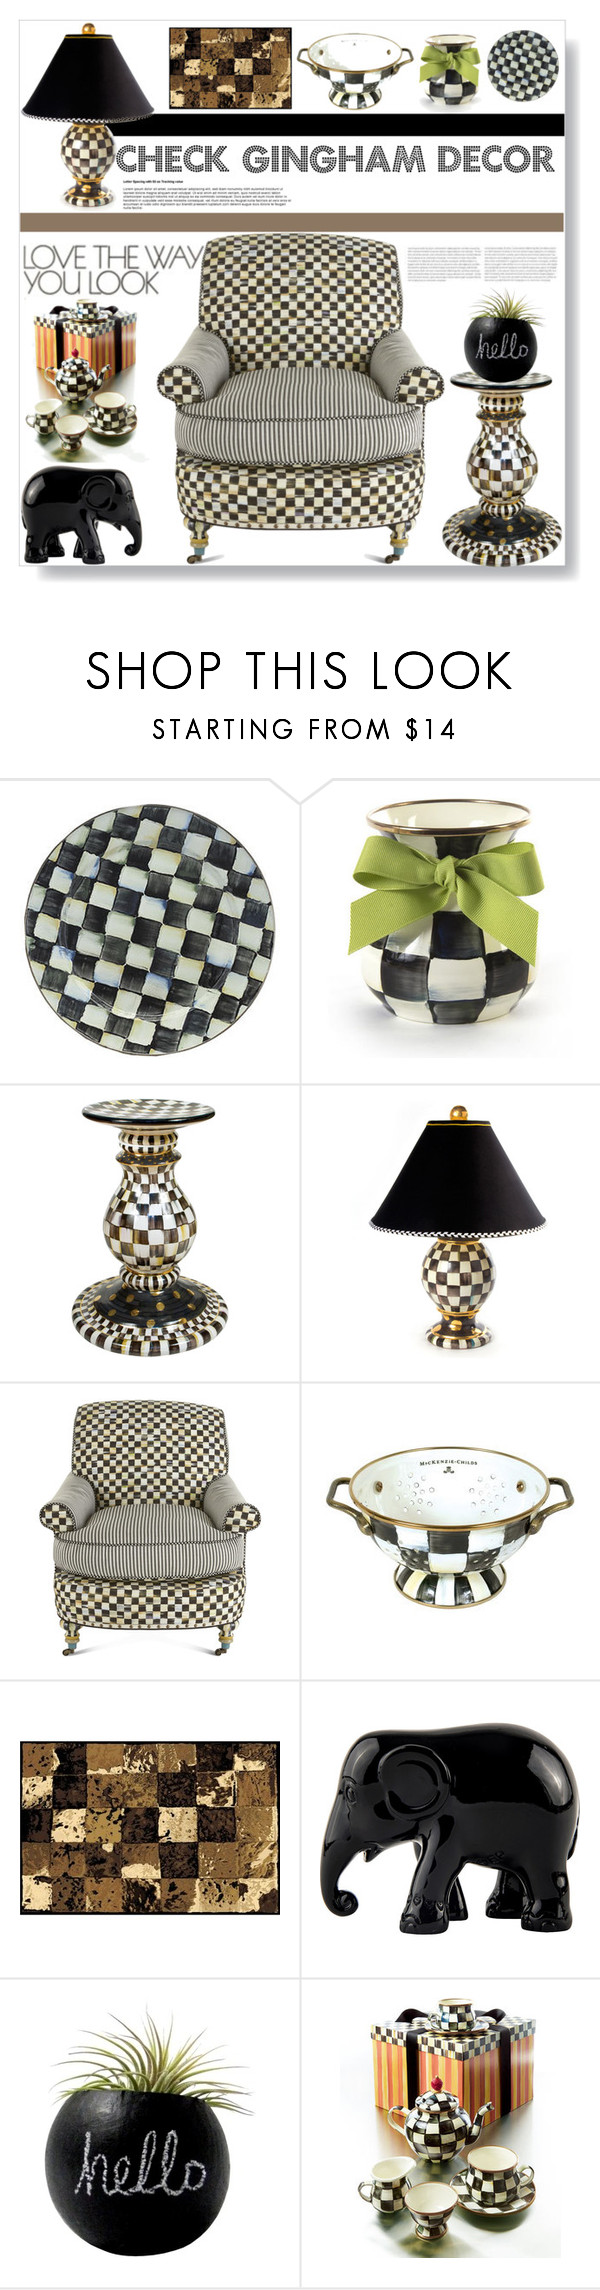 """""""CHECK GINGHAM DECOR AND FURNITURE"""" by purplerose27 ❤ liked on Polyvore featuring interior, interiors, interior design, home, home decor, interior decorating, MacKenzie-Childs, INC International Concepts, The Elephant Family and Dot & Bo"""